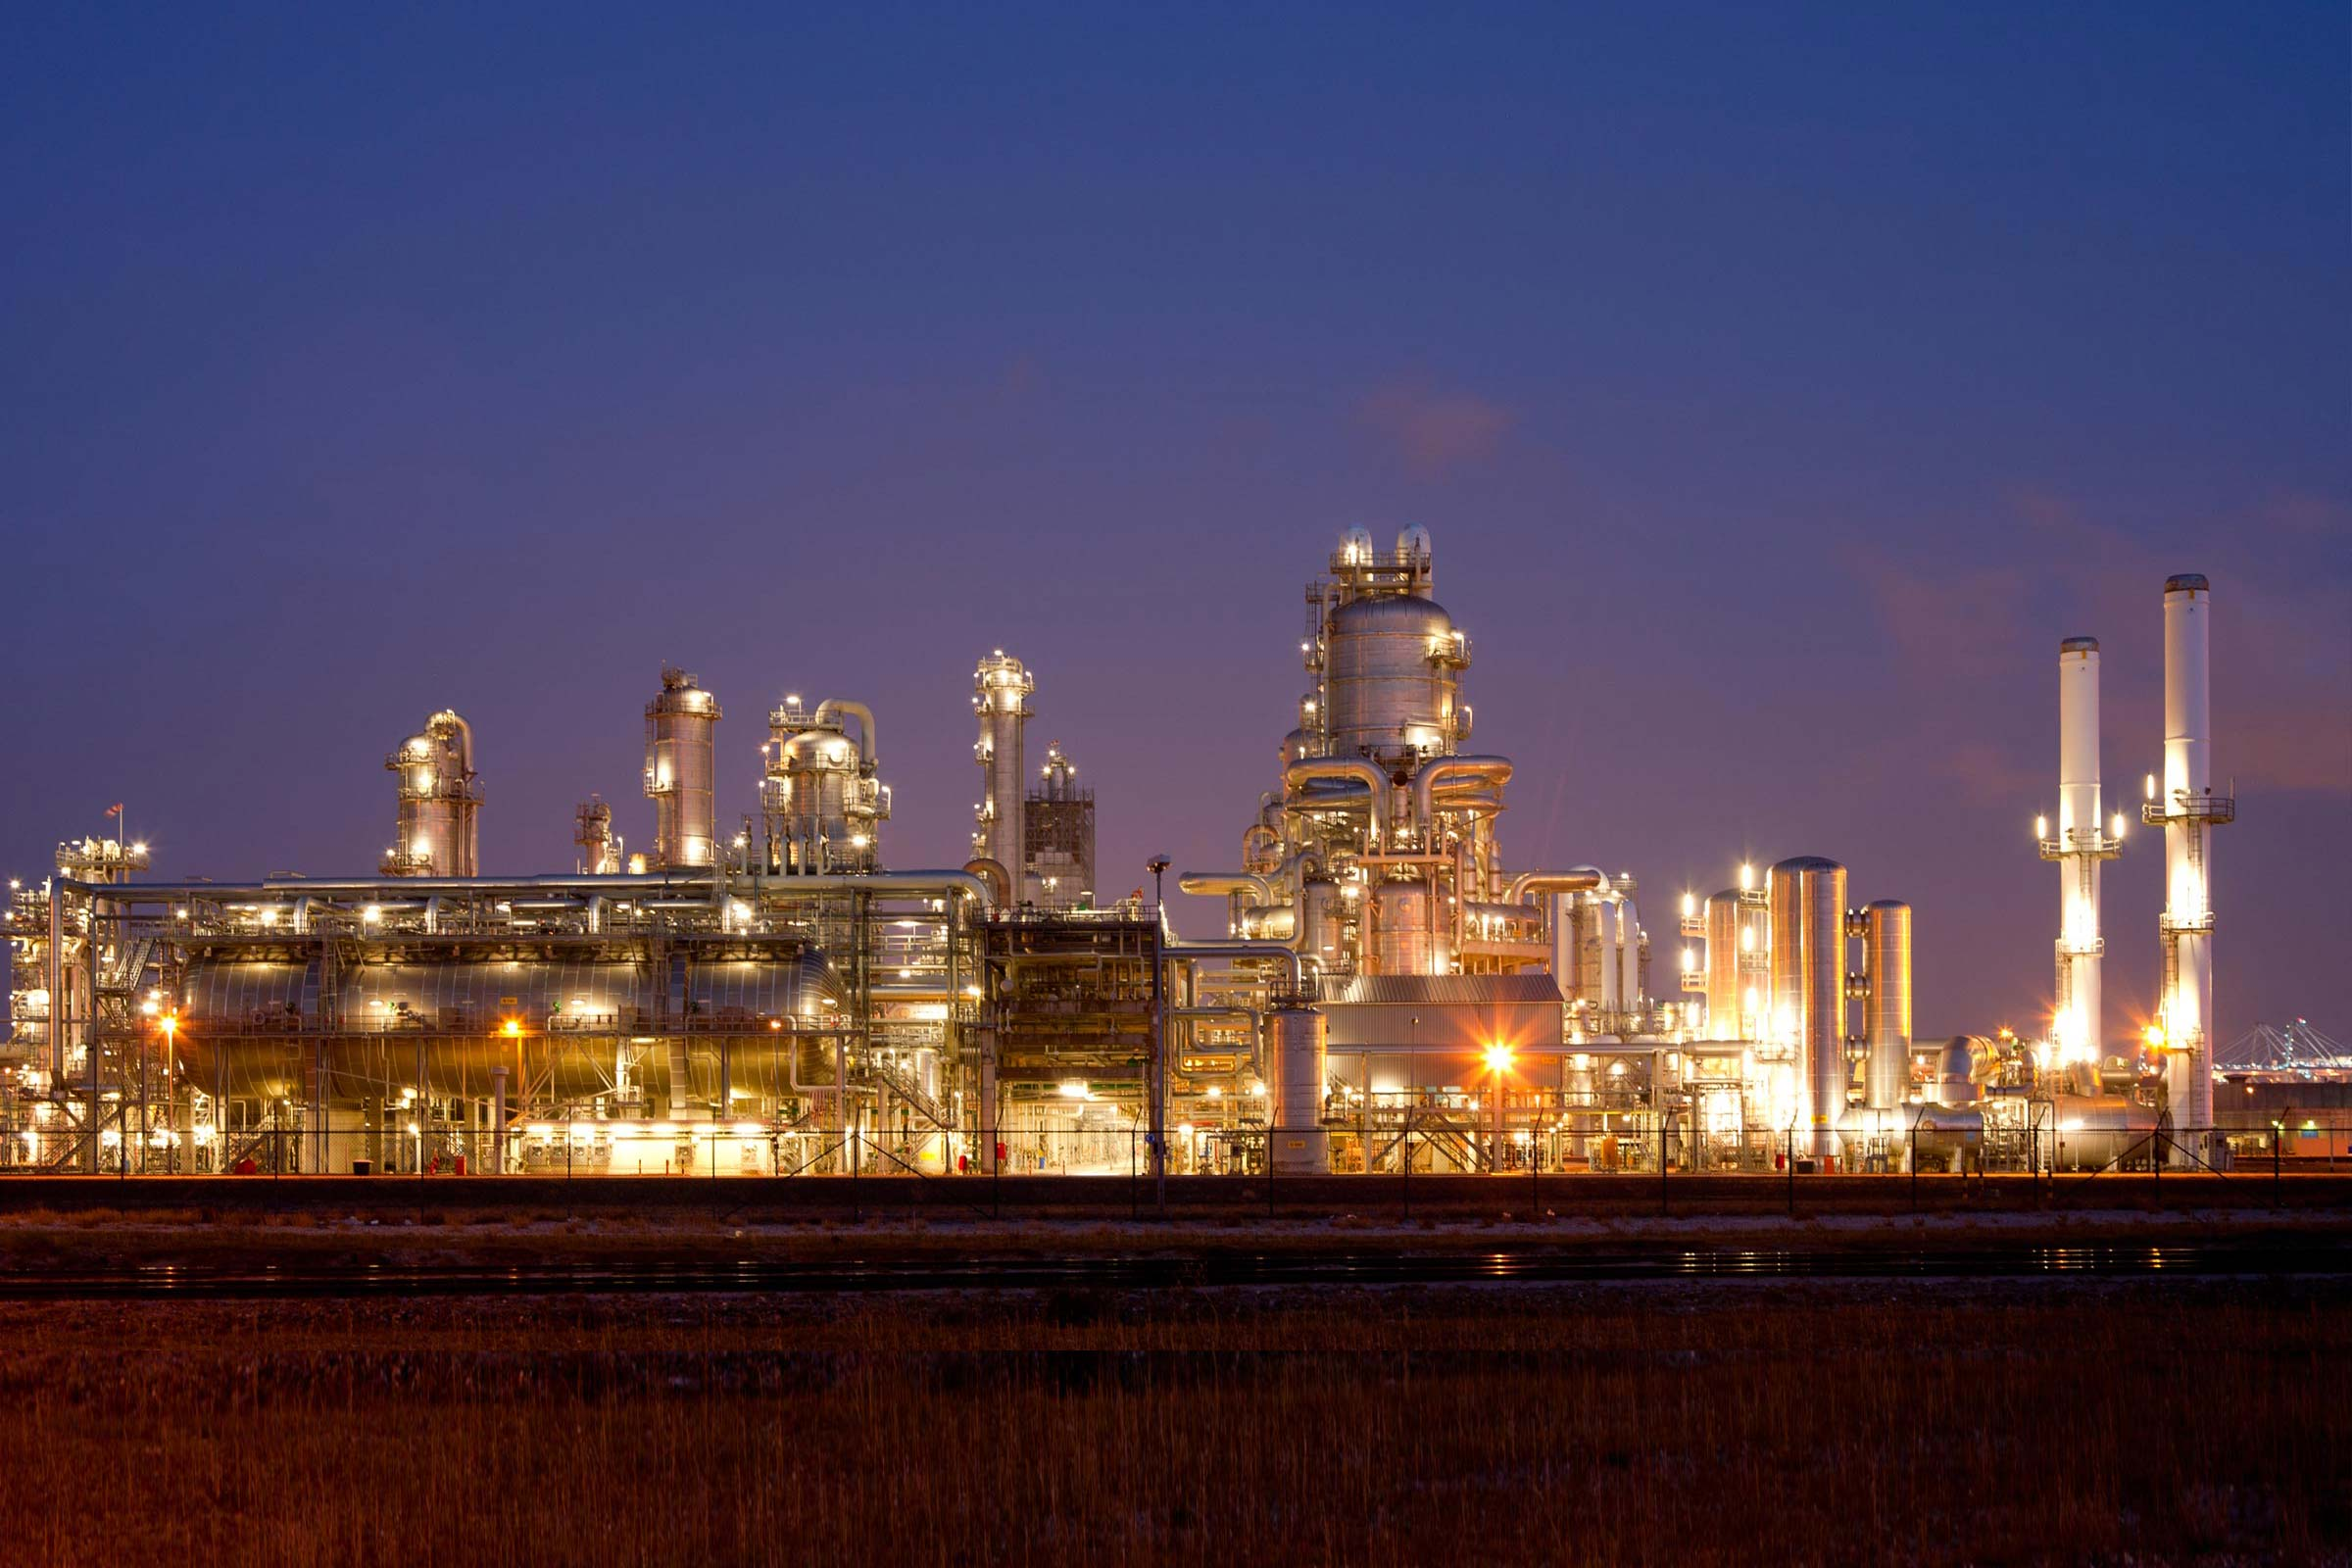 Background image of oil refinery